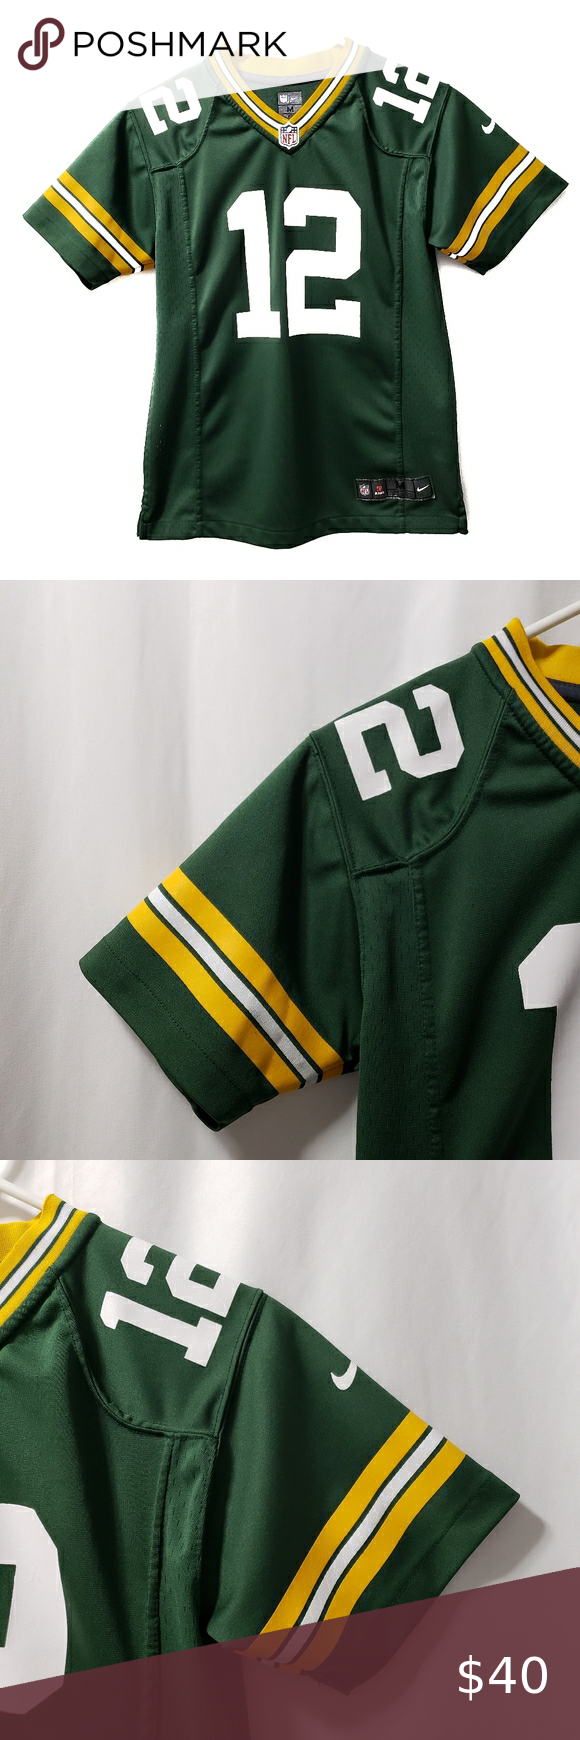 Green Bay Packers Nike Jersey Rodgers 12 Kids M In 2020 Nike Jersey Green Bay Packers Clothes Design